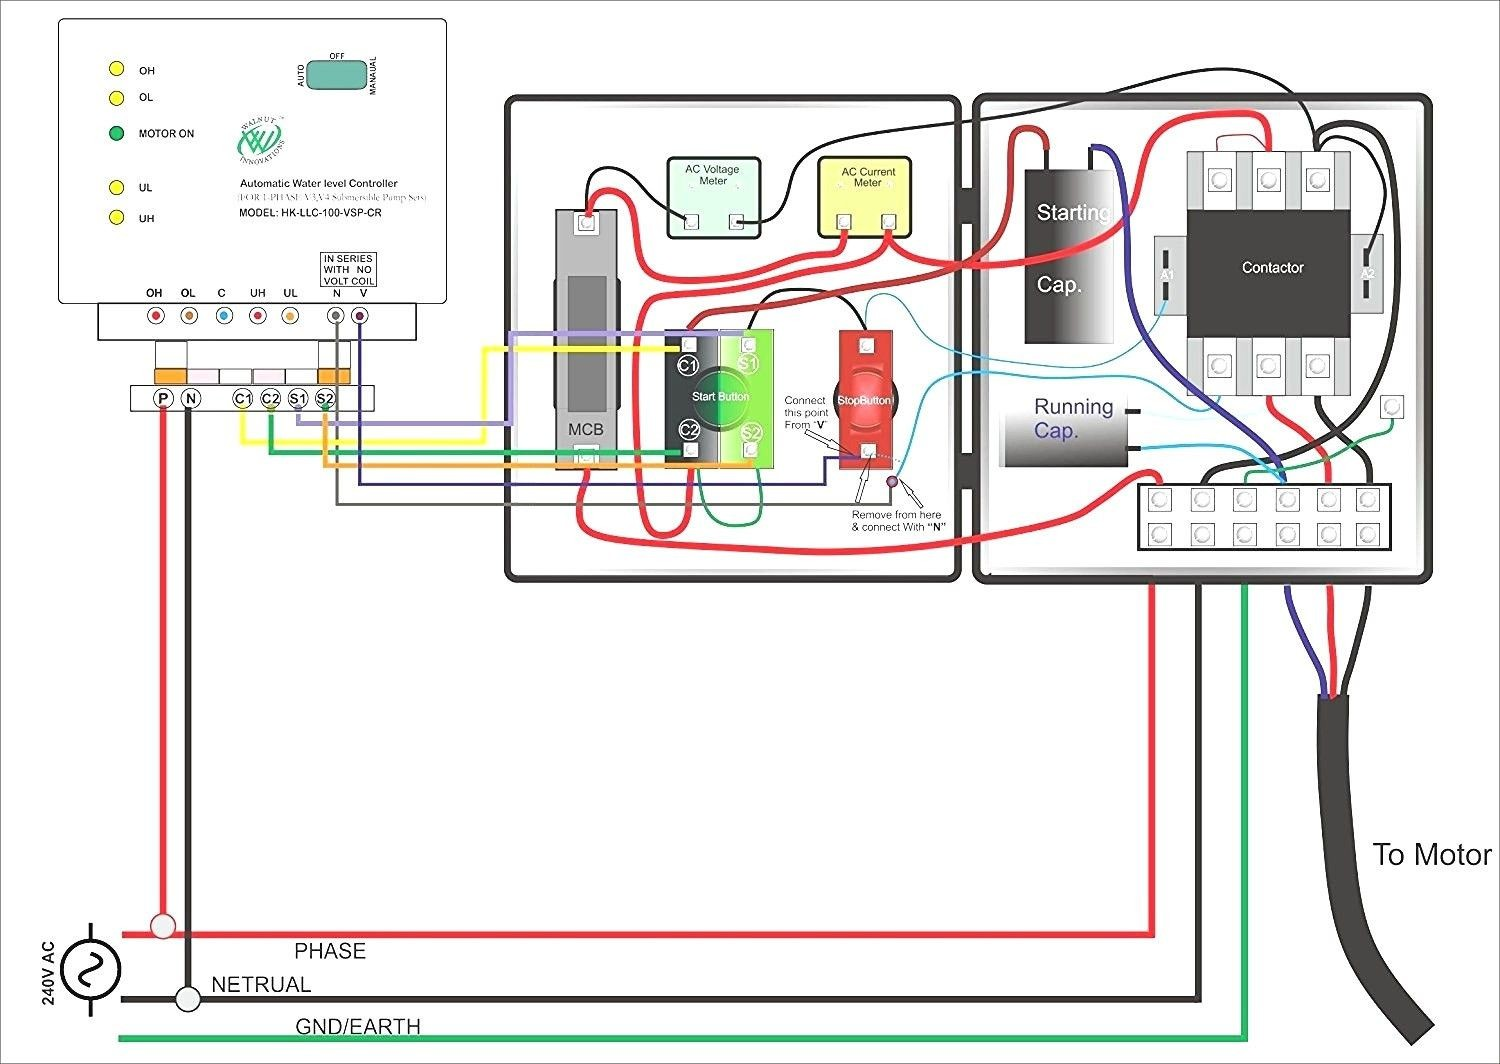 4 Wire Submersible Pump Wiring Diagram Awesome | Wiring ...  Wire Submersible Pump Wiring Diagram on